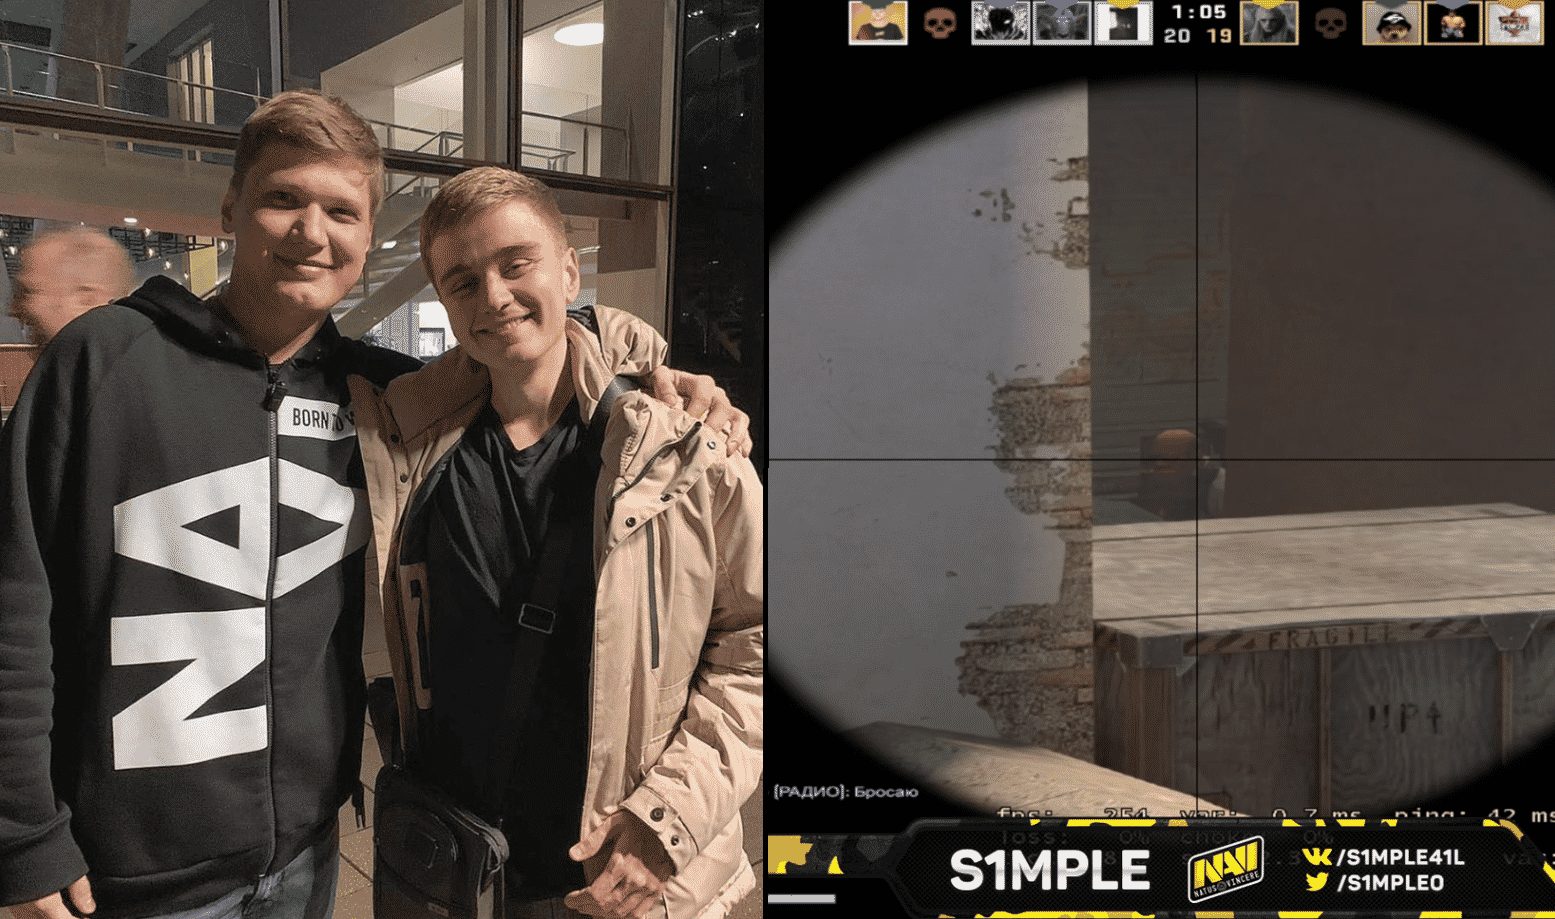 Best CSGO player in the world, s1mple, continues to amaze us